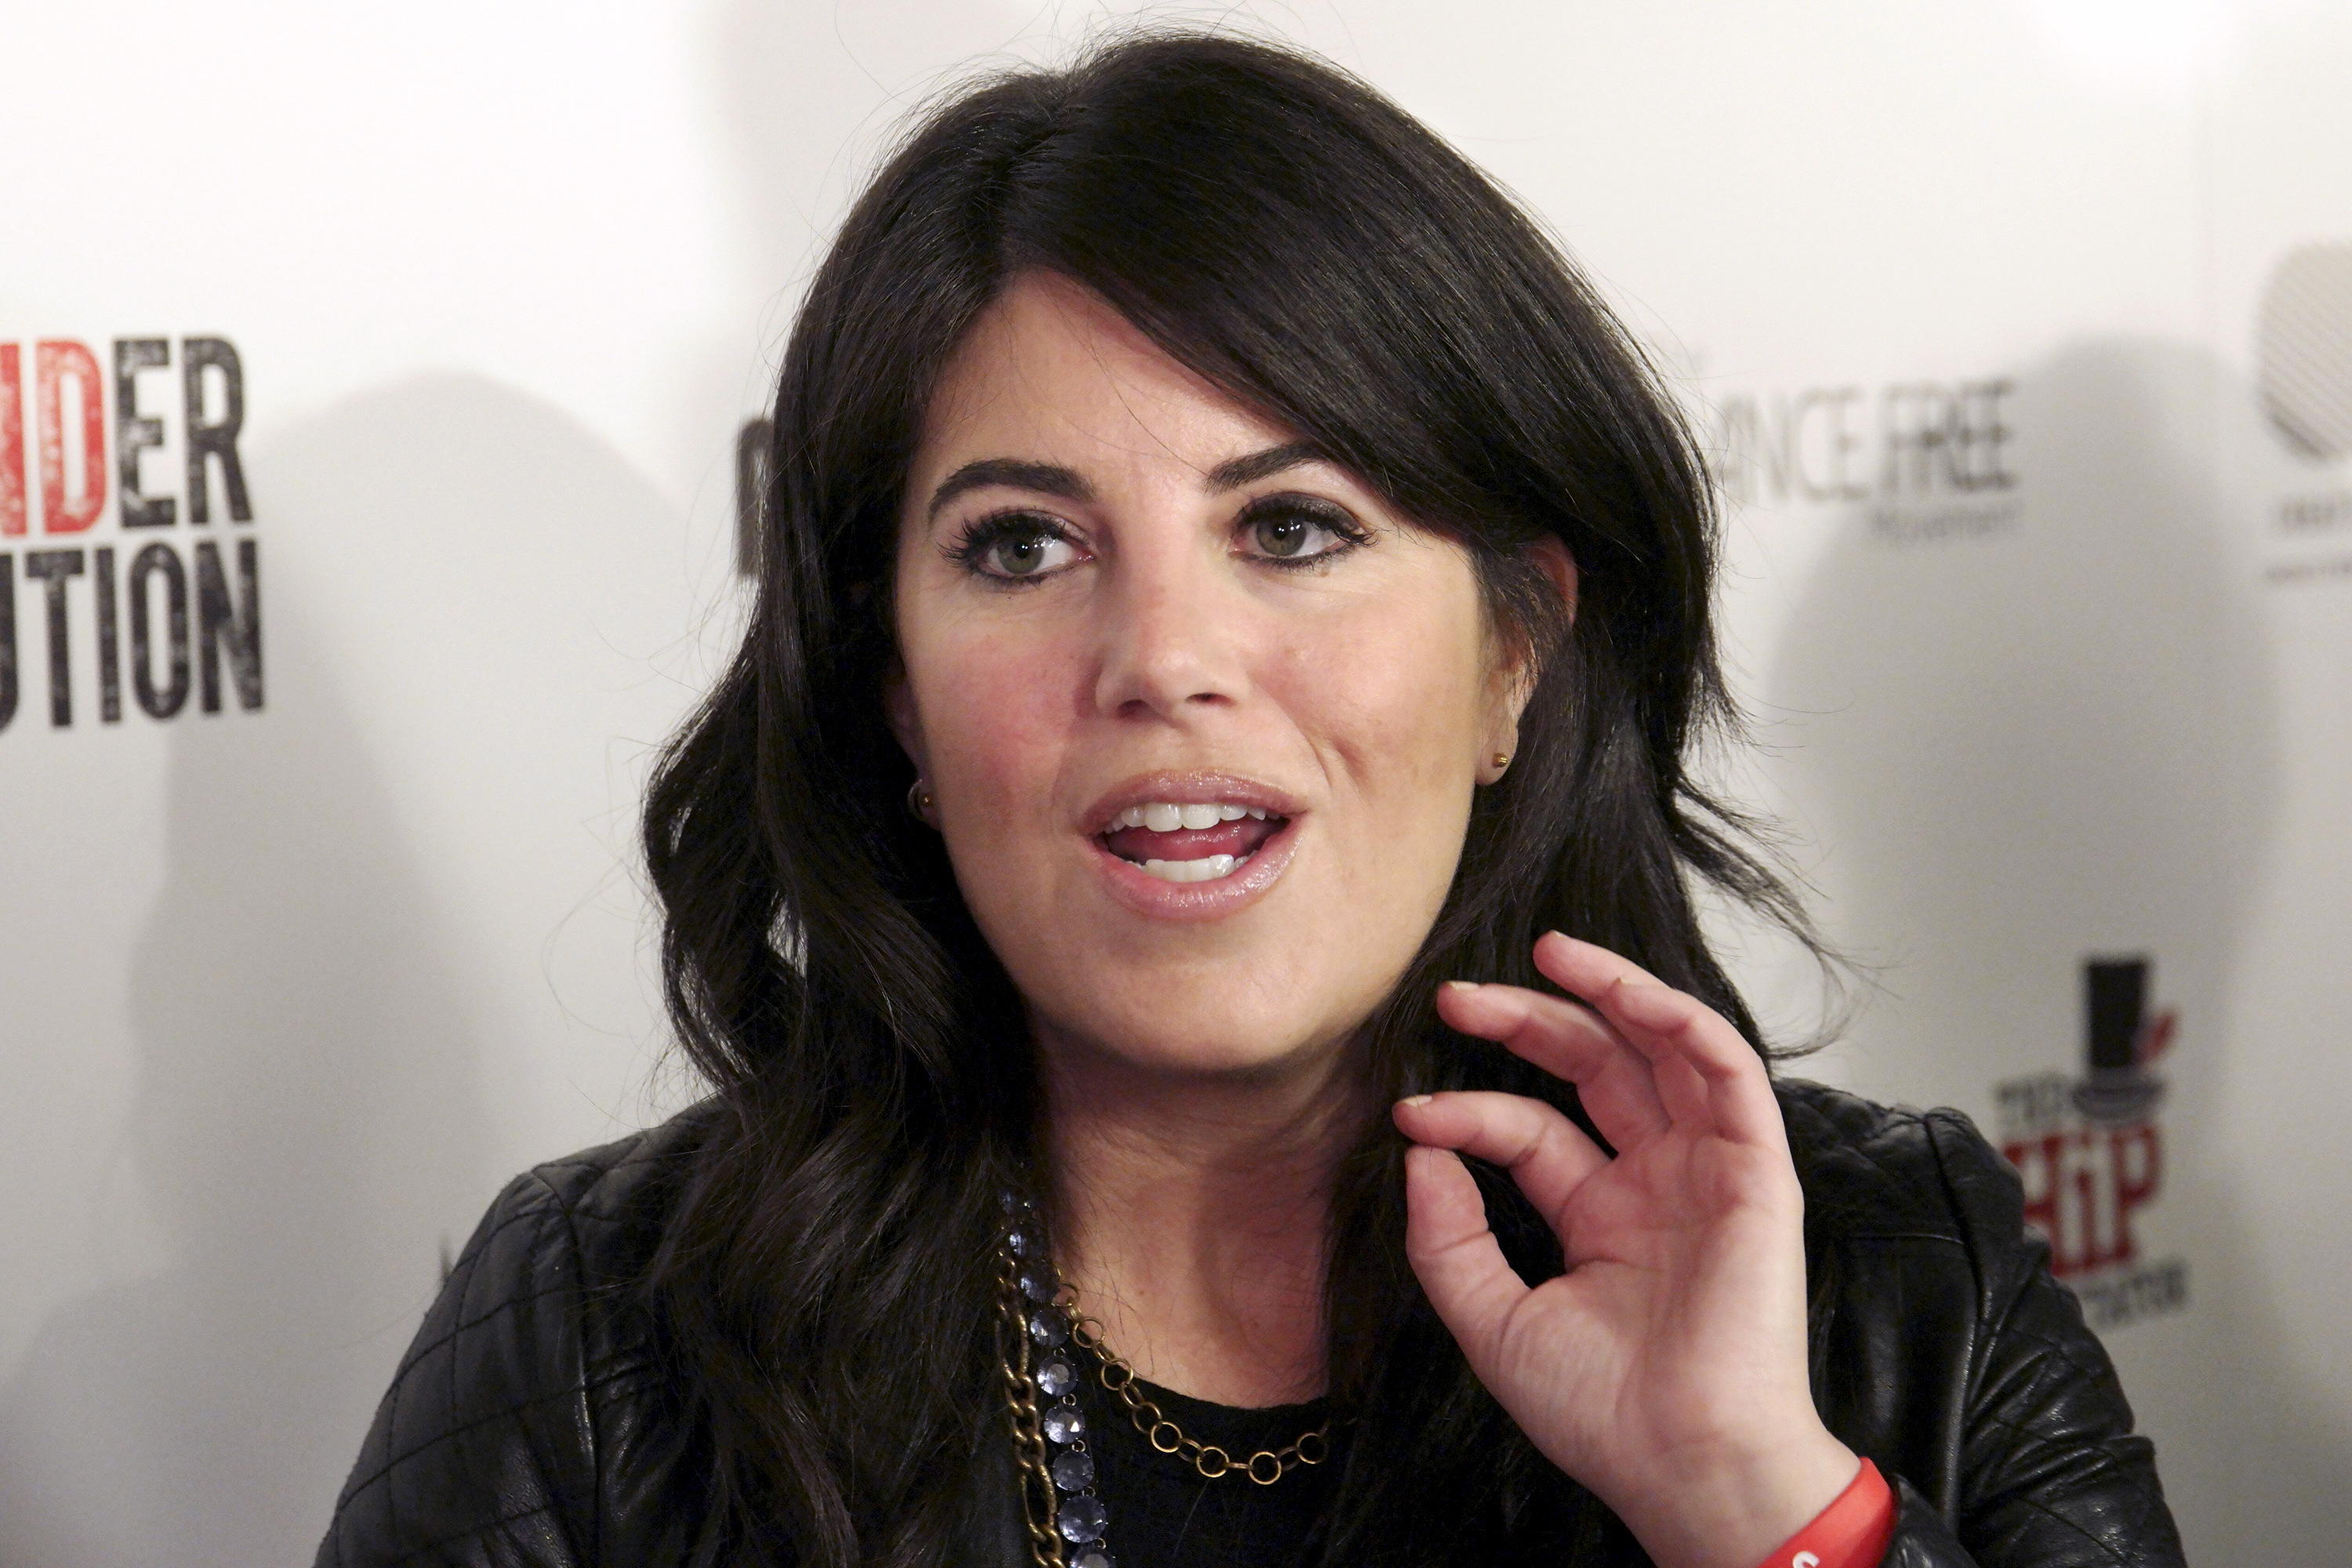 monica-lewinsky-storms-off-stage-over-question-about-bill-clinton